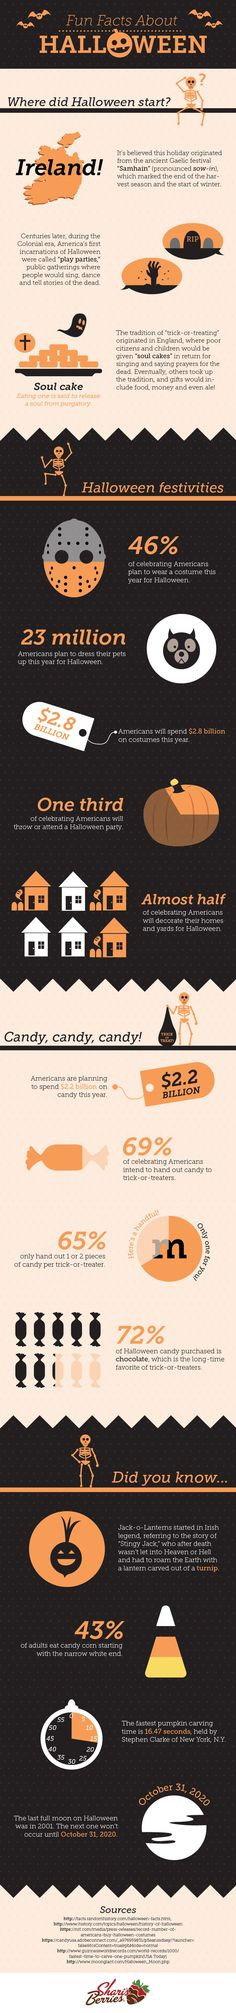 Fun halloween-facts...posted By Laurie Turk on TipJunkie.com